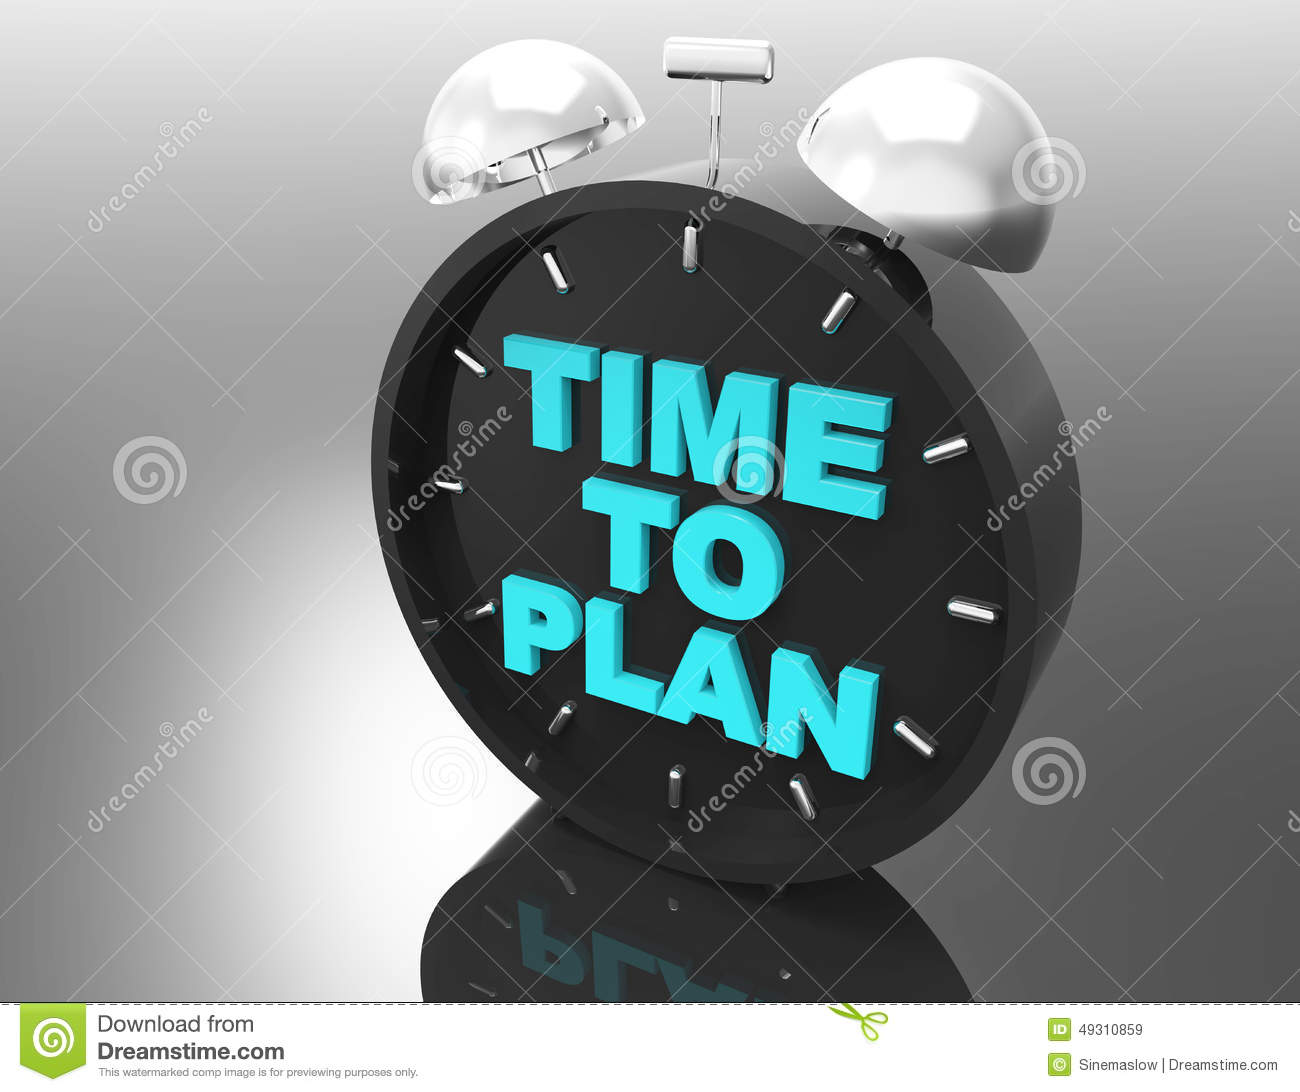 Time to plan concept royalty free stock image for Time design planner